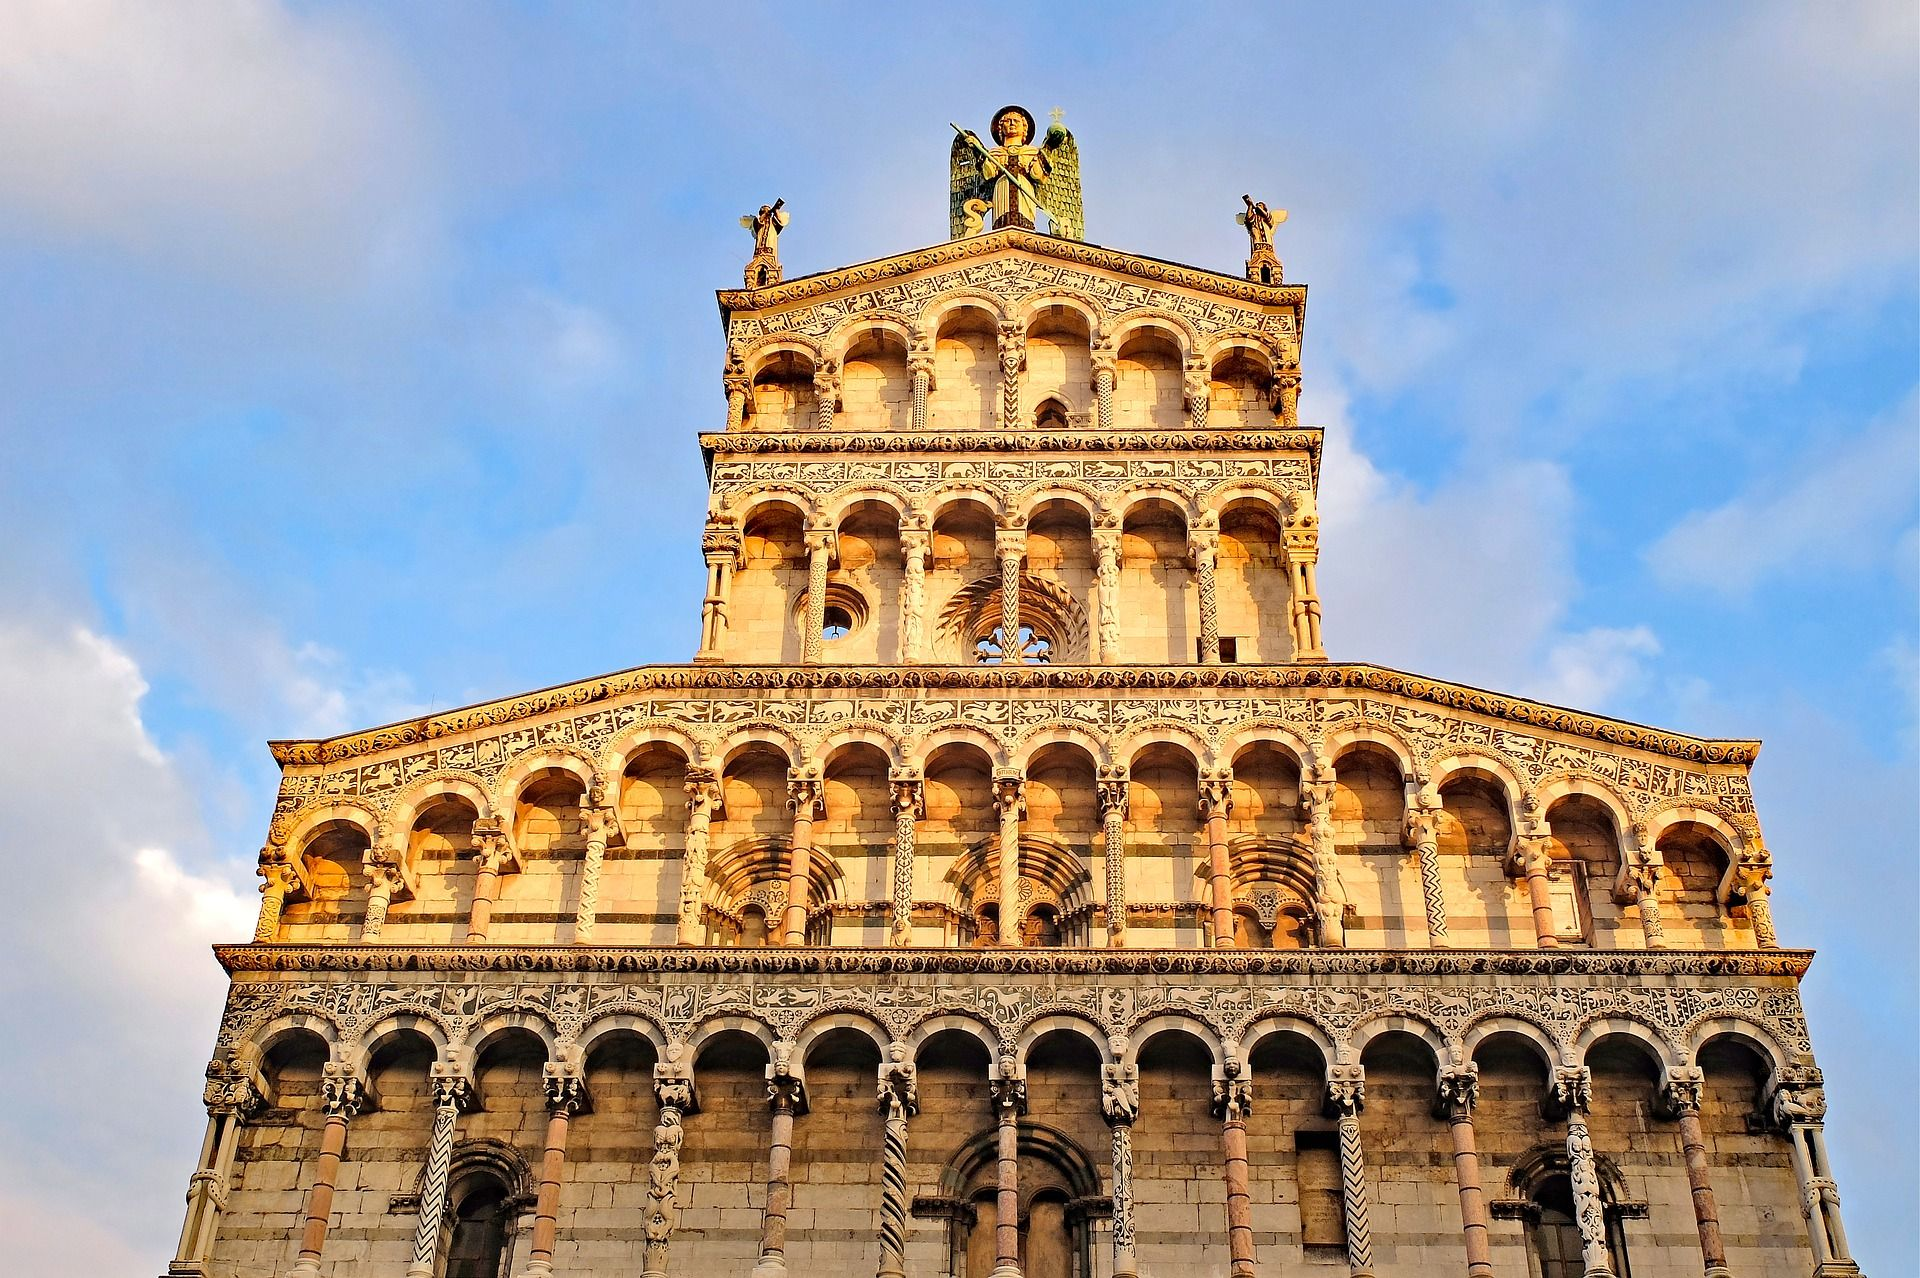 lucca-Dom(c)Pixabay free